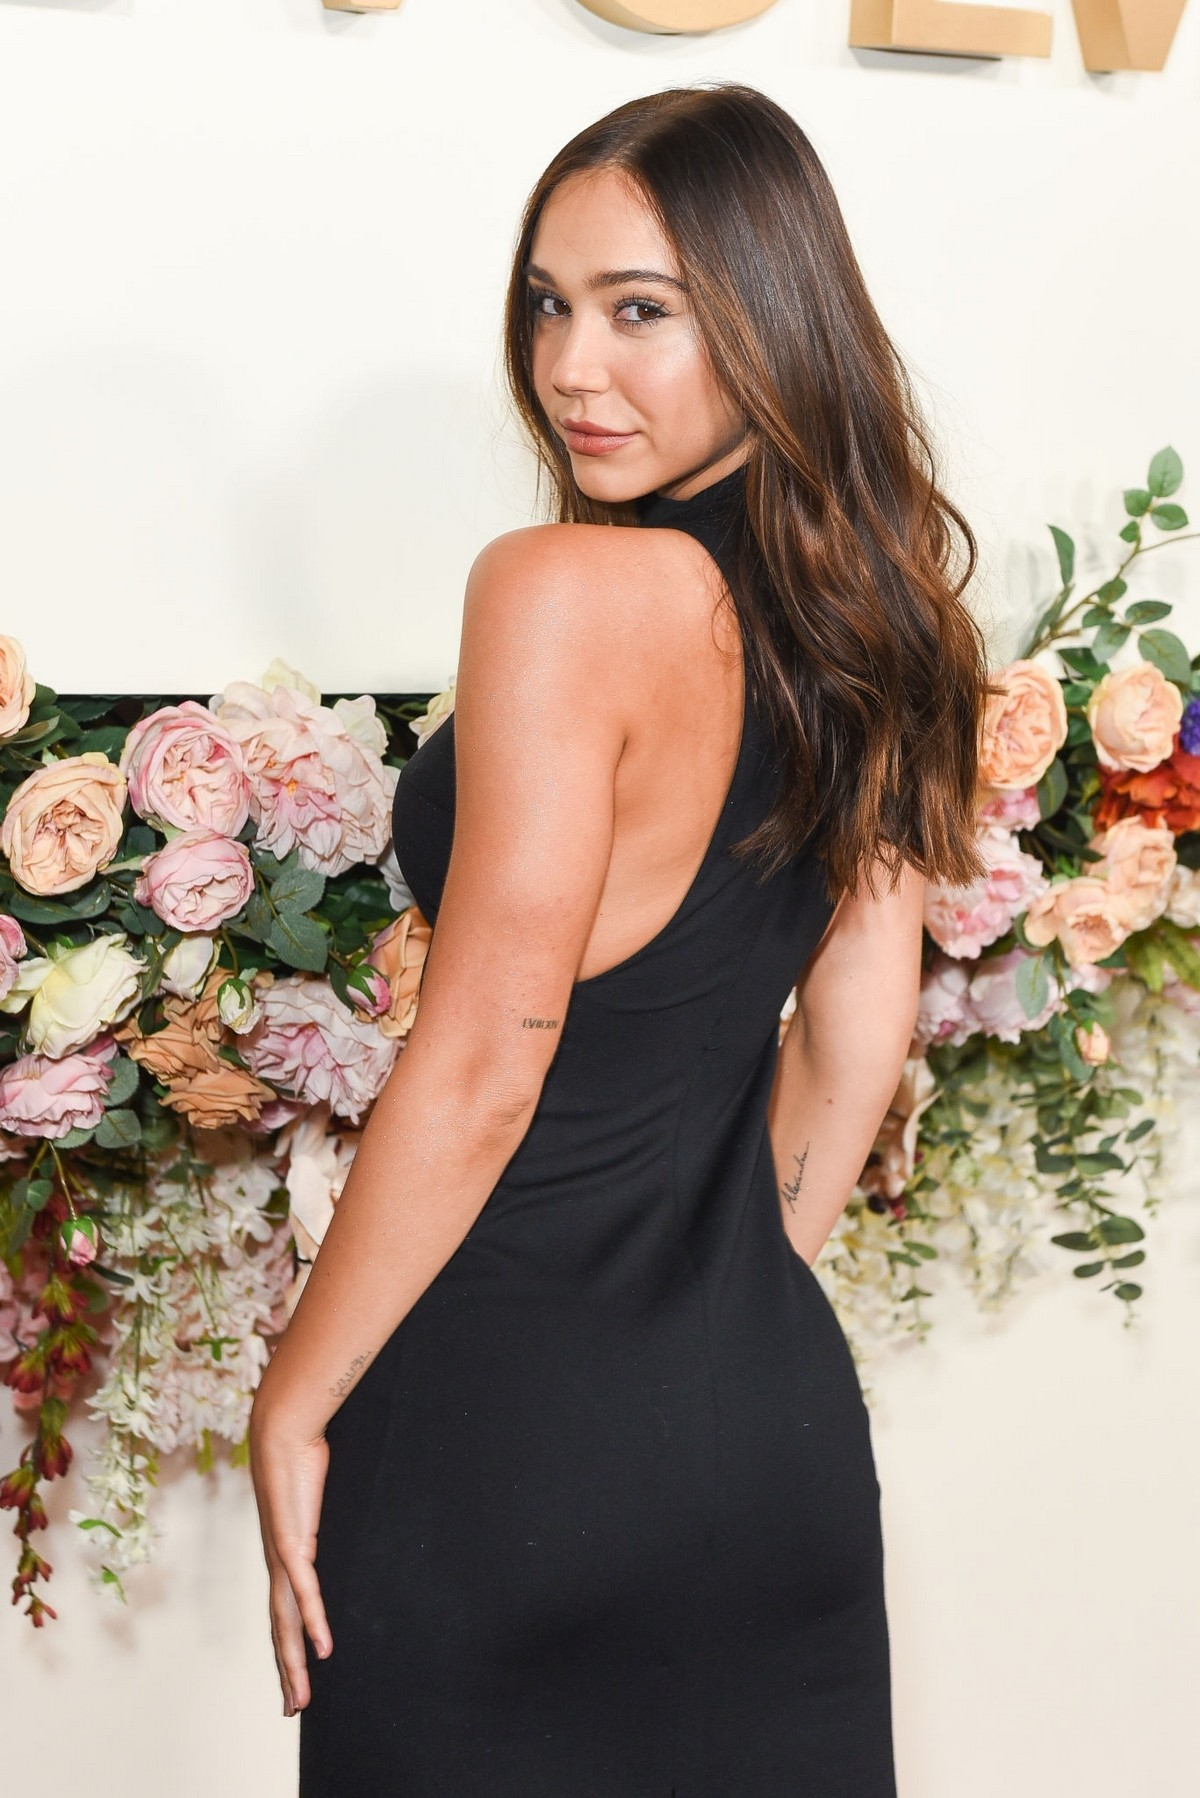 Alexis Ren in Black Dress at 3rd Annual #Revolve Awards in Hollywood 2019/11/15 6